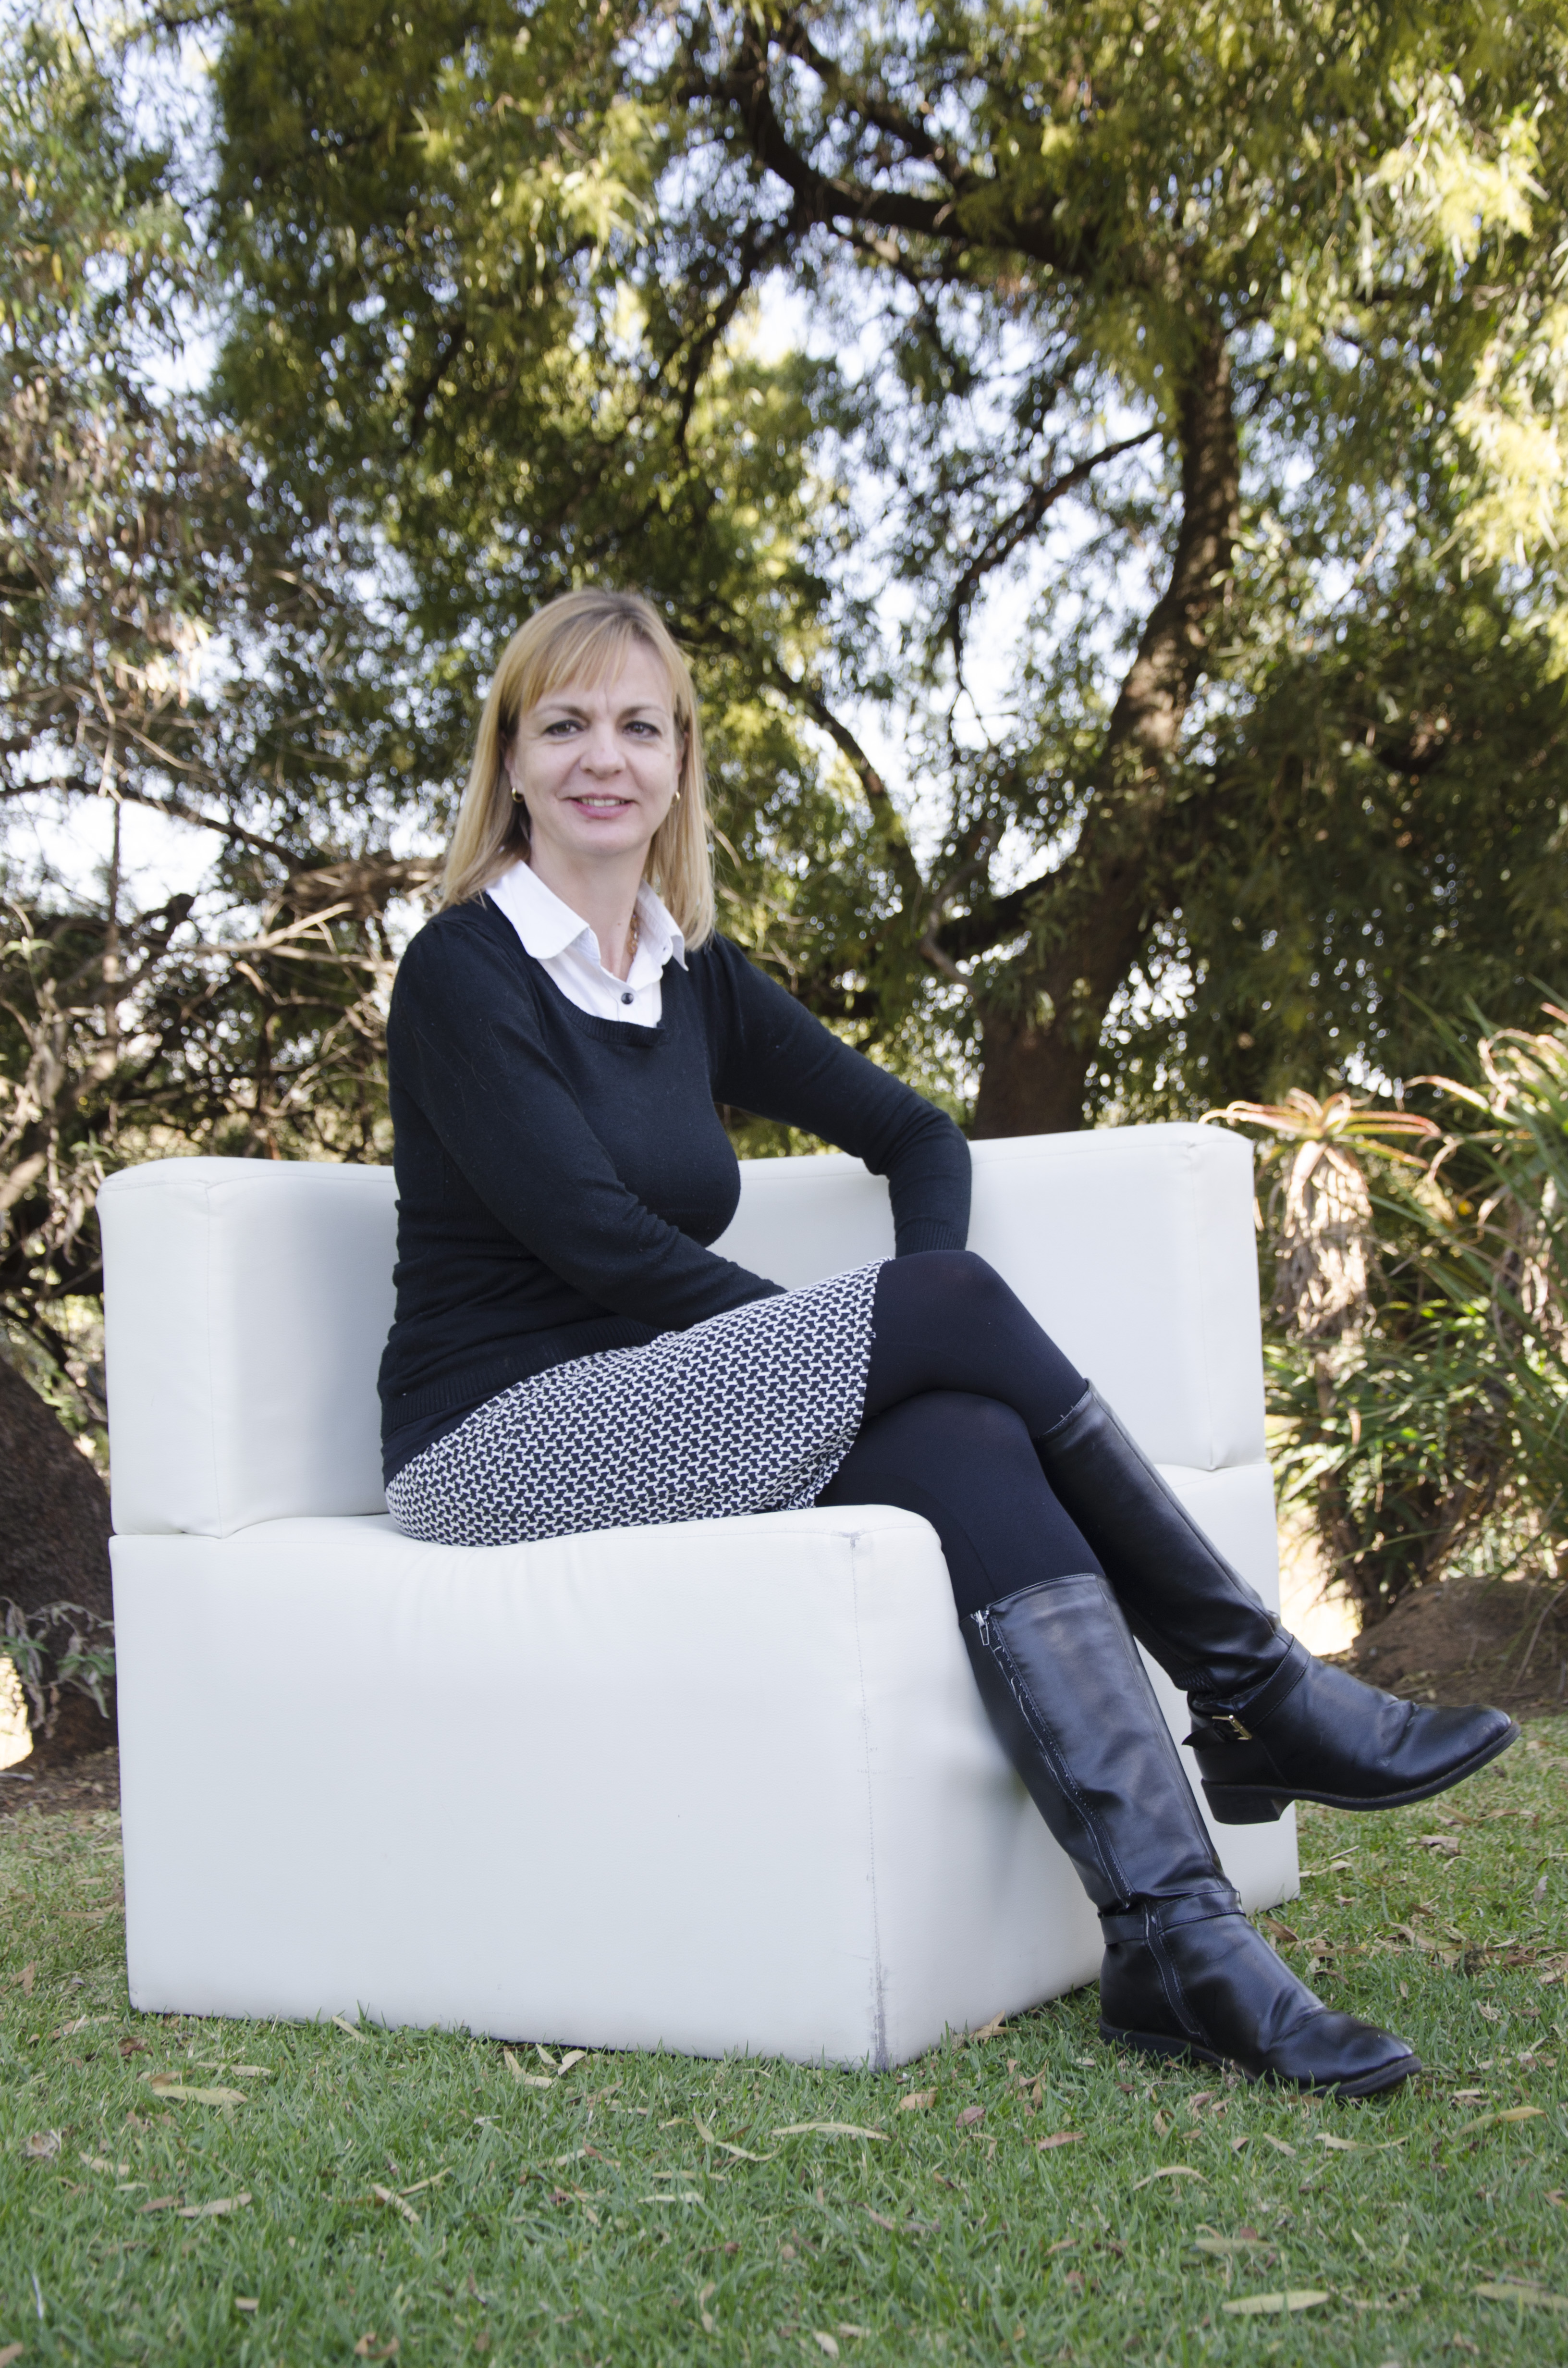 Photograph of Irma Karsten sitting outside on a white couch under the trees. Irma is wearing a navy blue pullover and a white collared top.